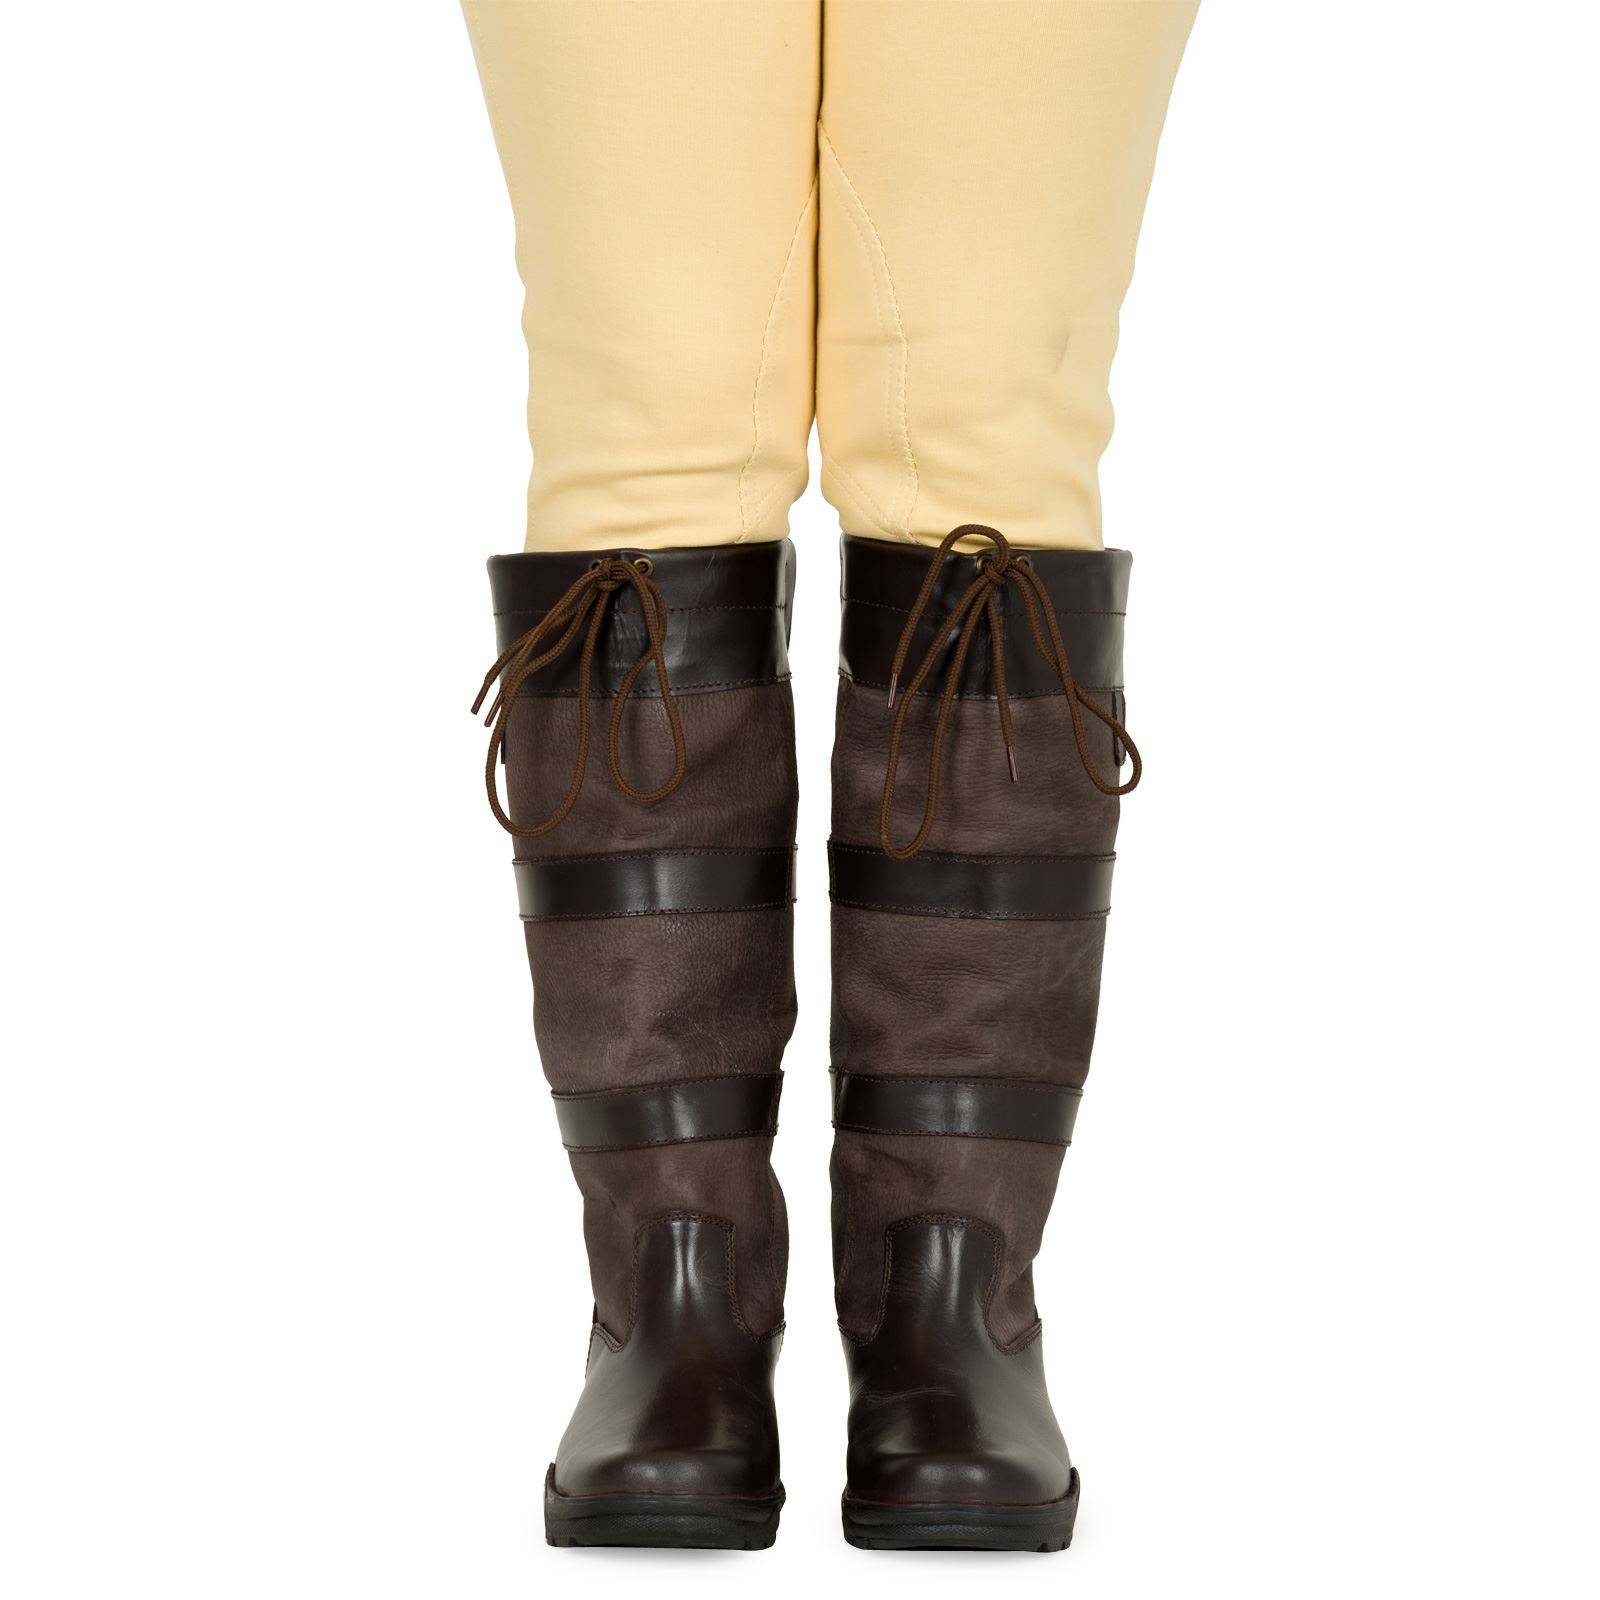 e176b3ab548 Details about Joy Rider Horse Riding Yard Stable Walking Water Resistant  Leather Country Boots